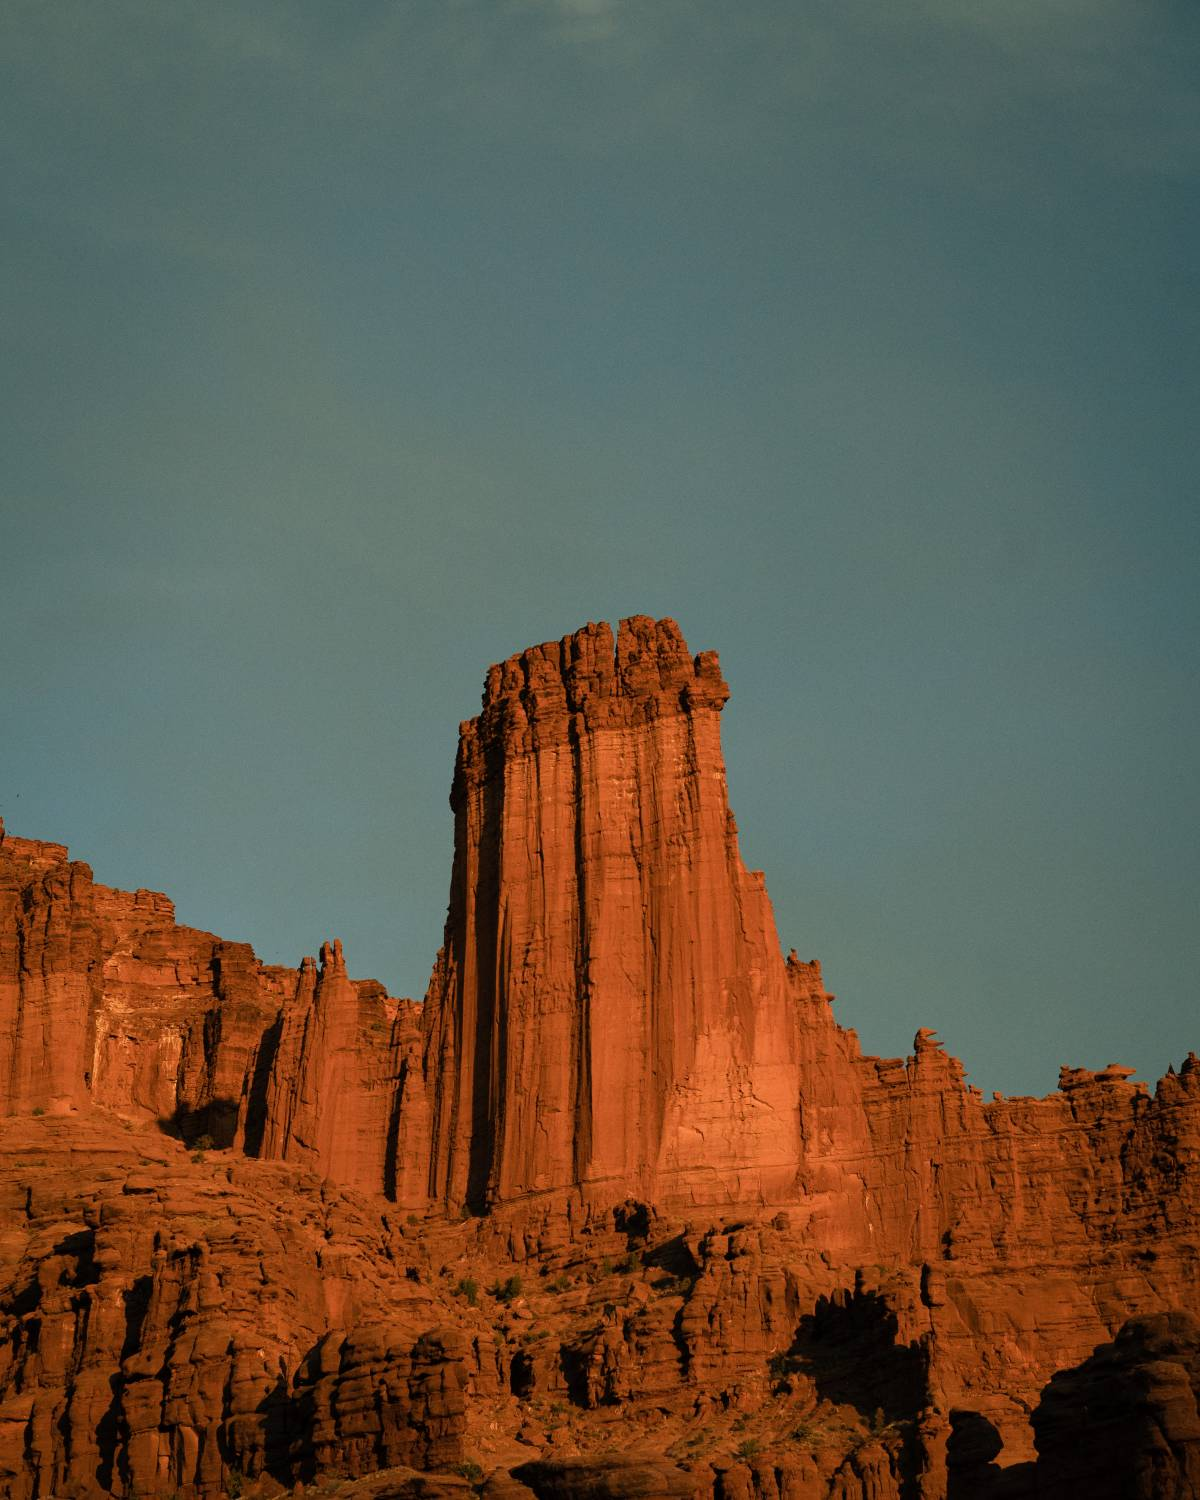 A view of part of Fisher Towers at sunset.